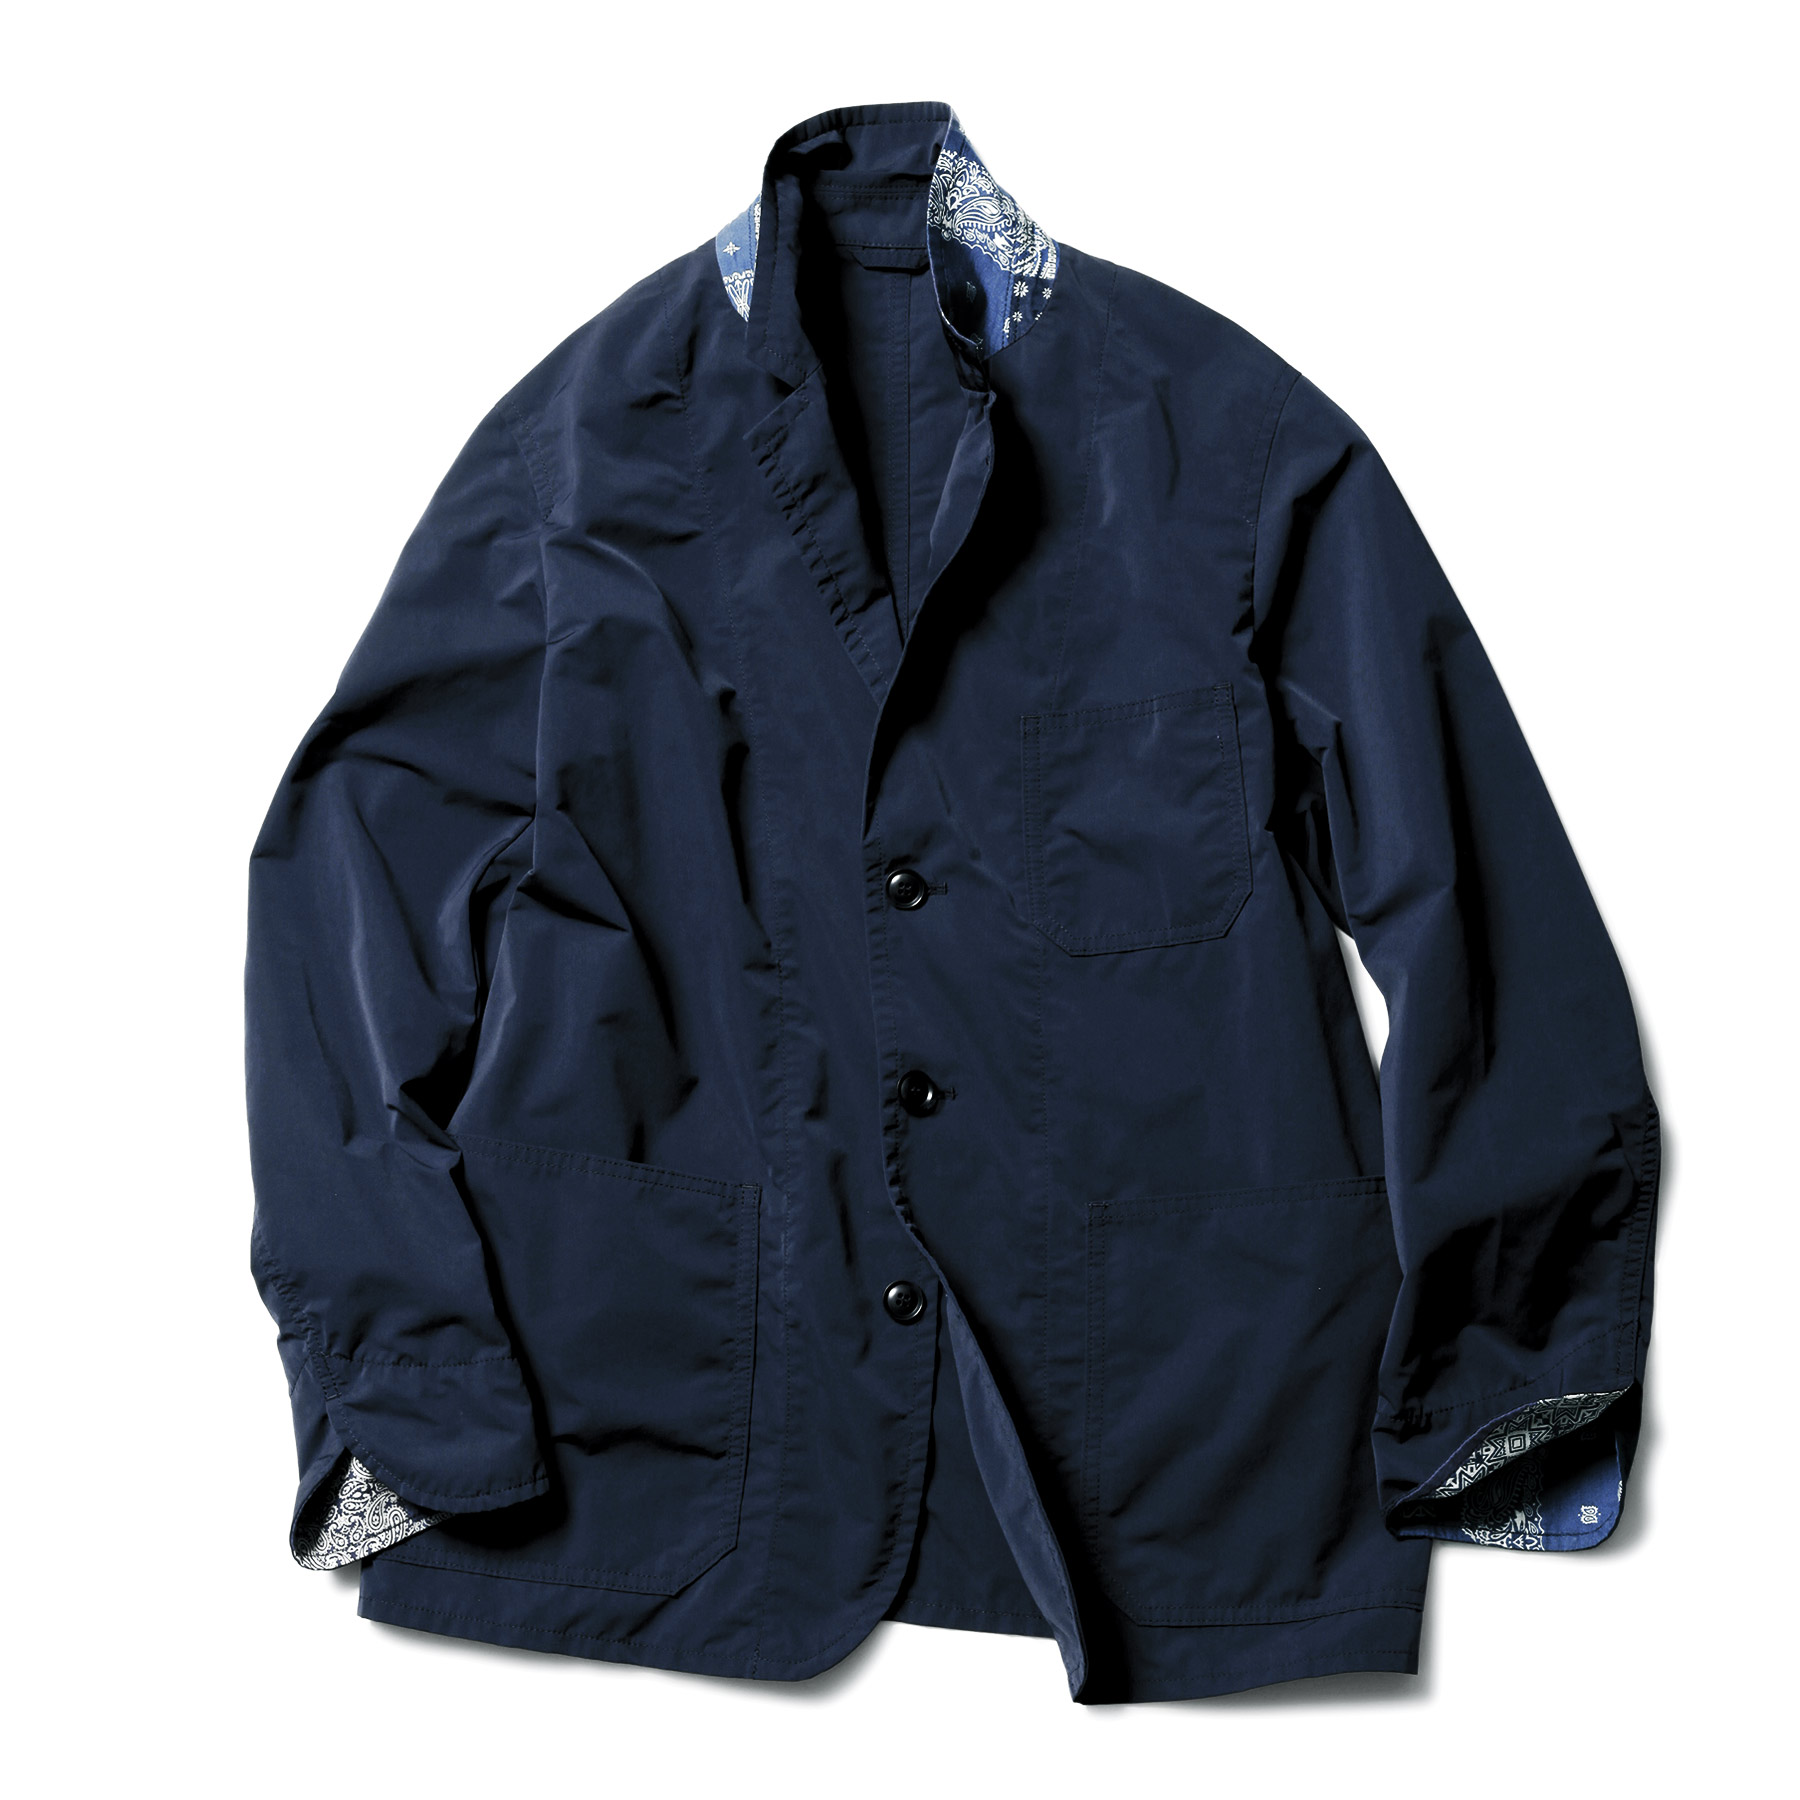 SOPHNET. / 3 BUTTON JACKET by SOLOTEX -NAVY